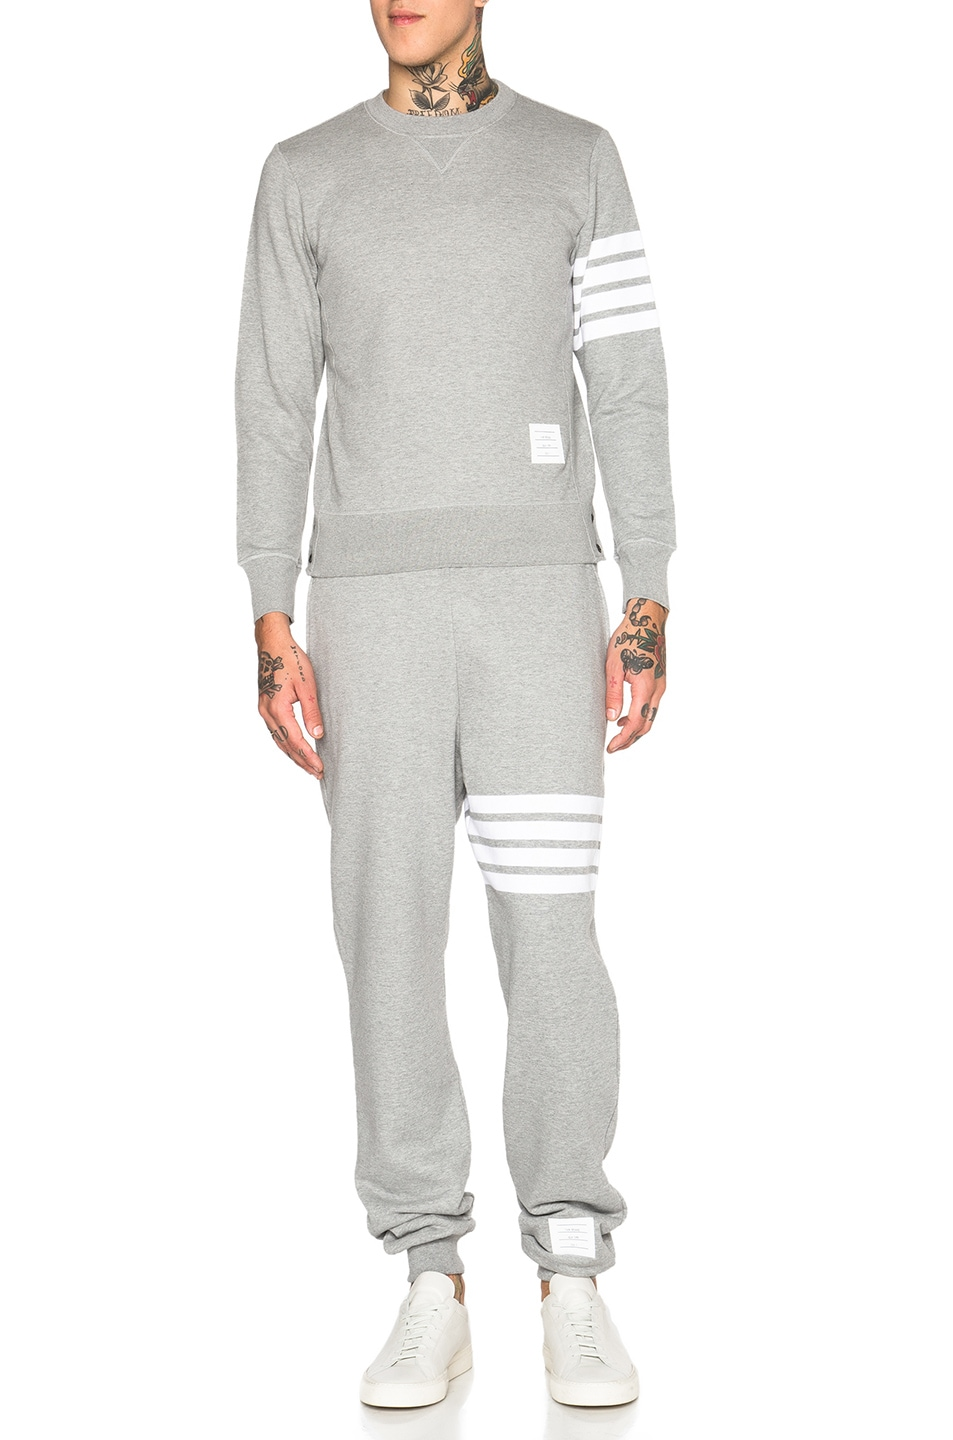 Image 5 of Thom Browne Cotton Sweatpants in Light Heather Grey